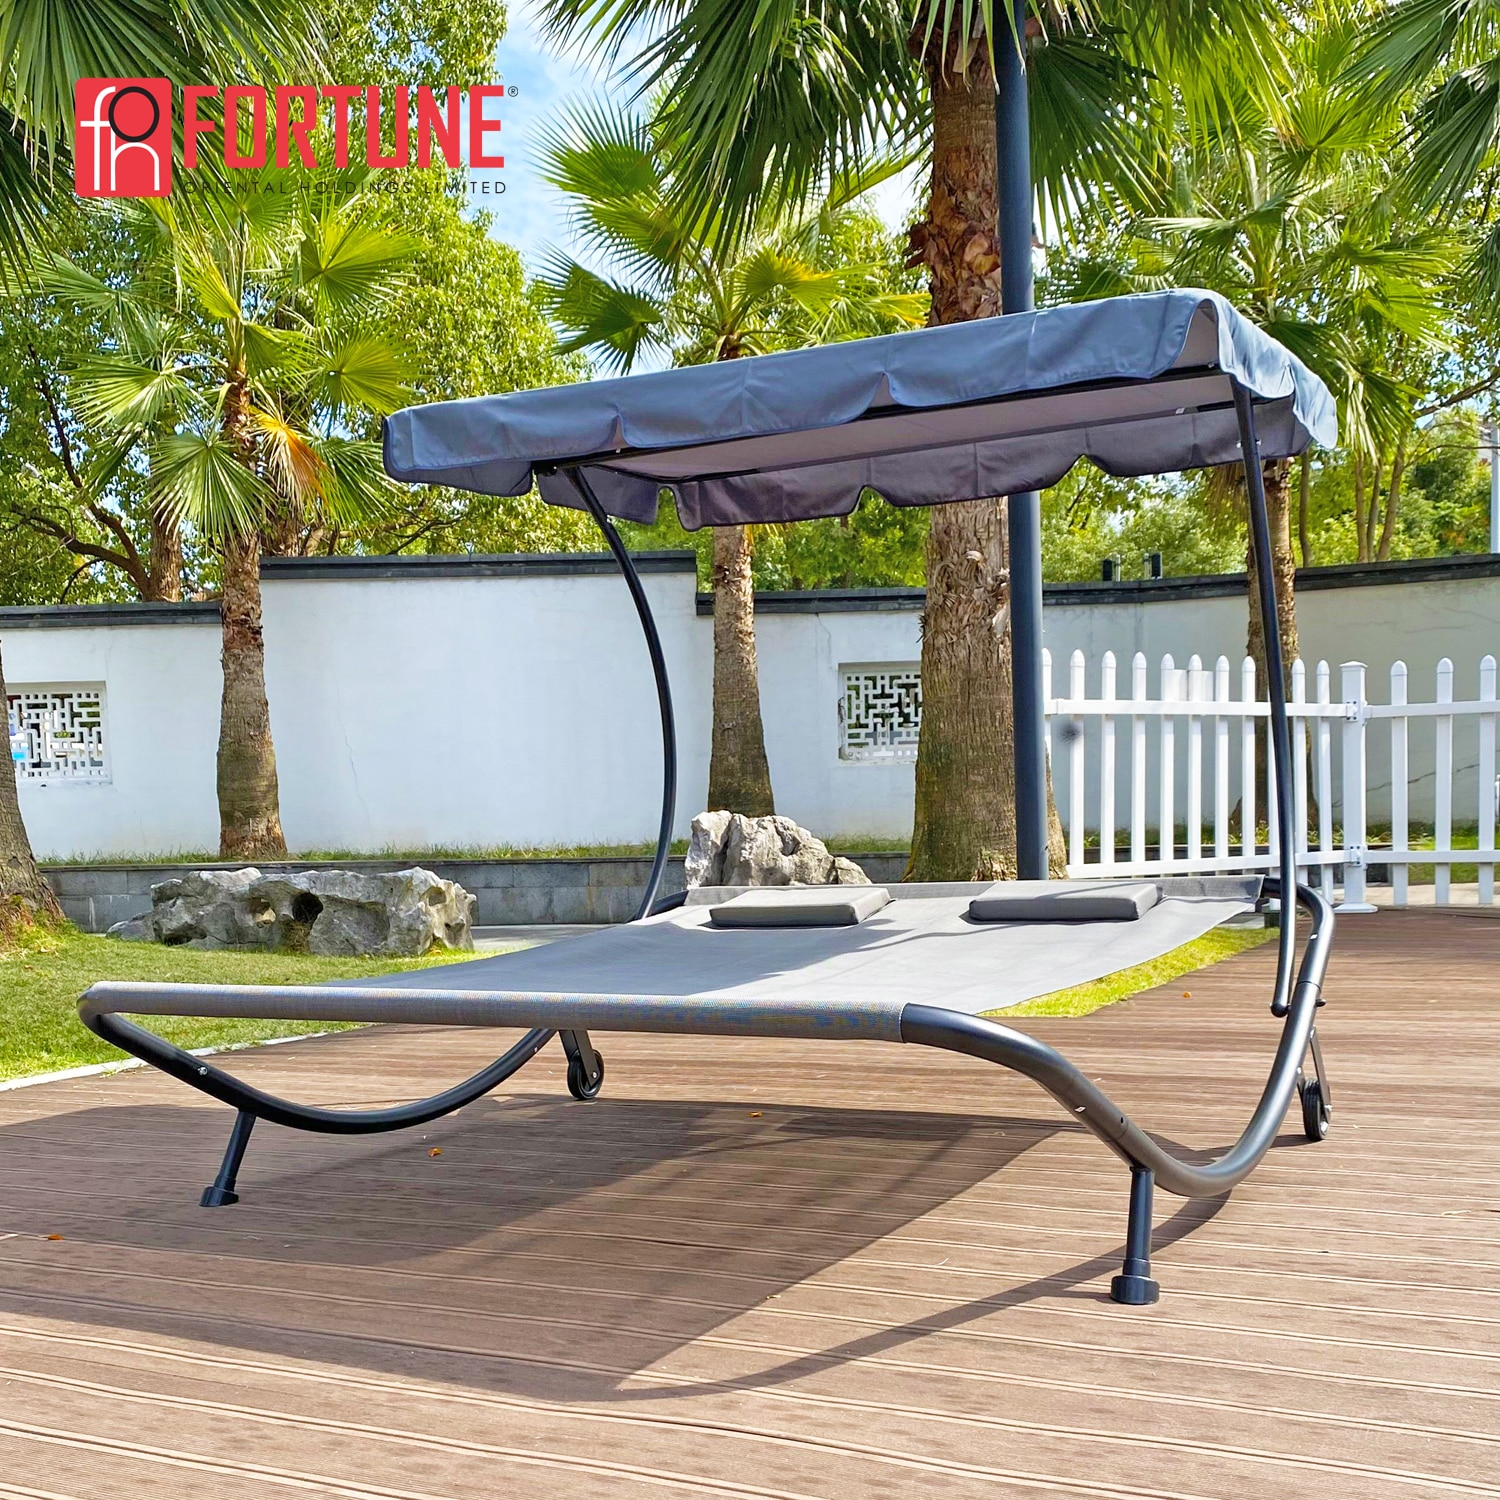 Outdoor Furniture Bed Portable Double Chaise Lounge Bed Garden Adjustable Canopy Oxford Cloth Sun Bed Courtyard, Poolside,Beach